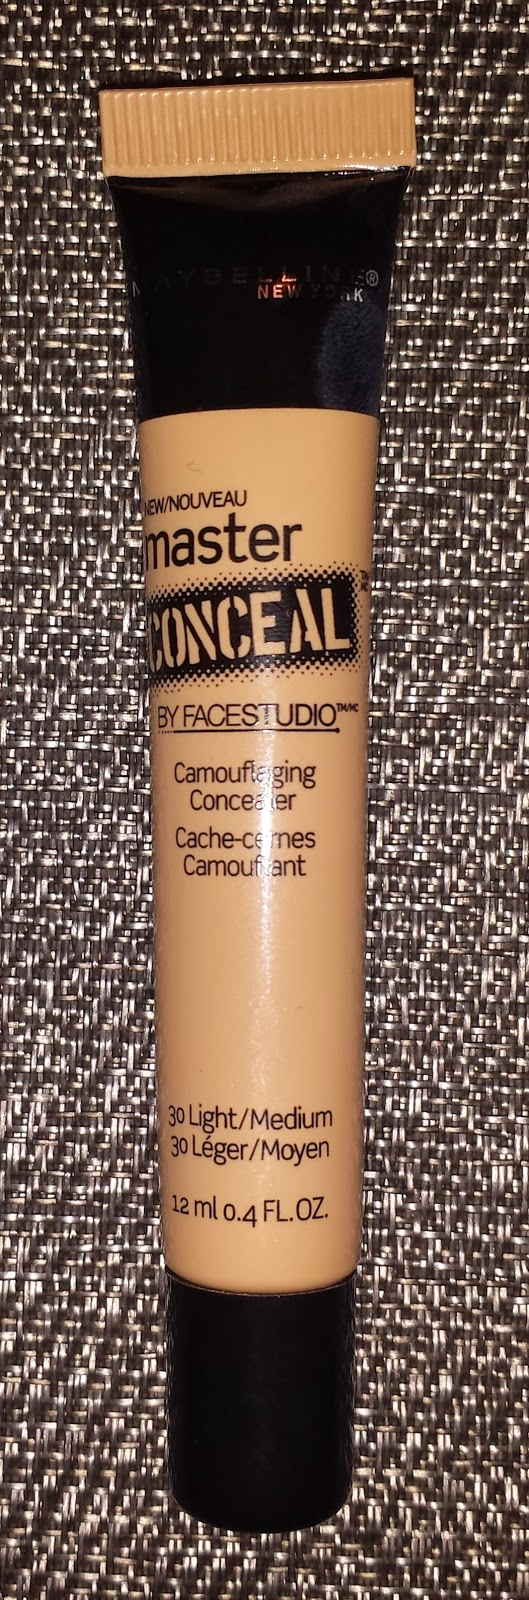 Top 10 Favorite Drugstore Products